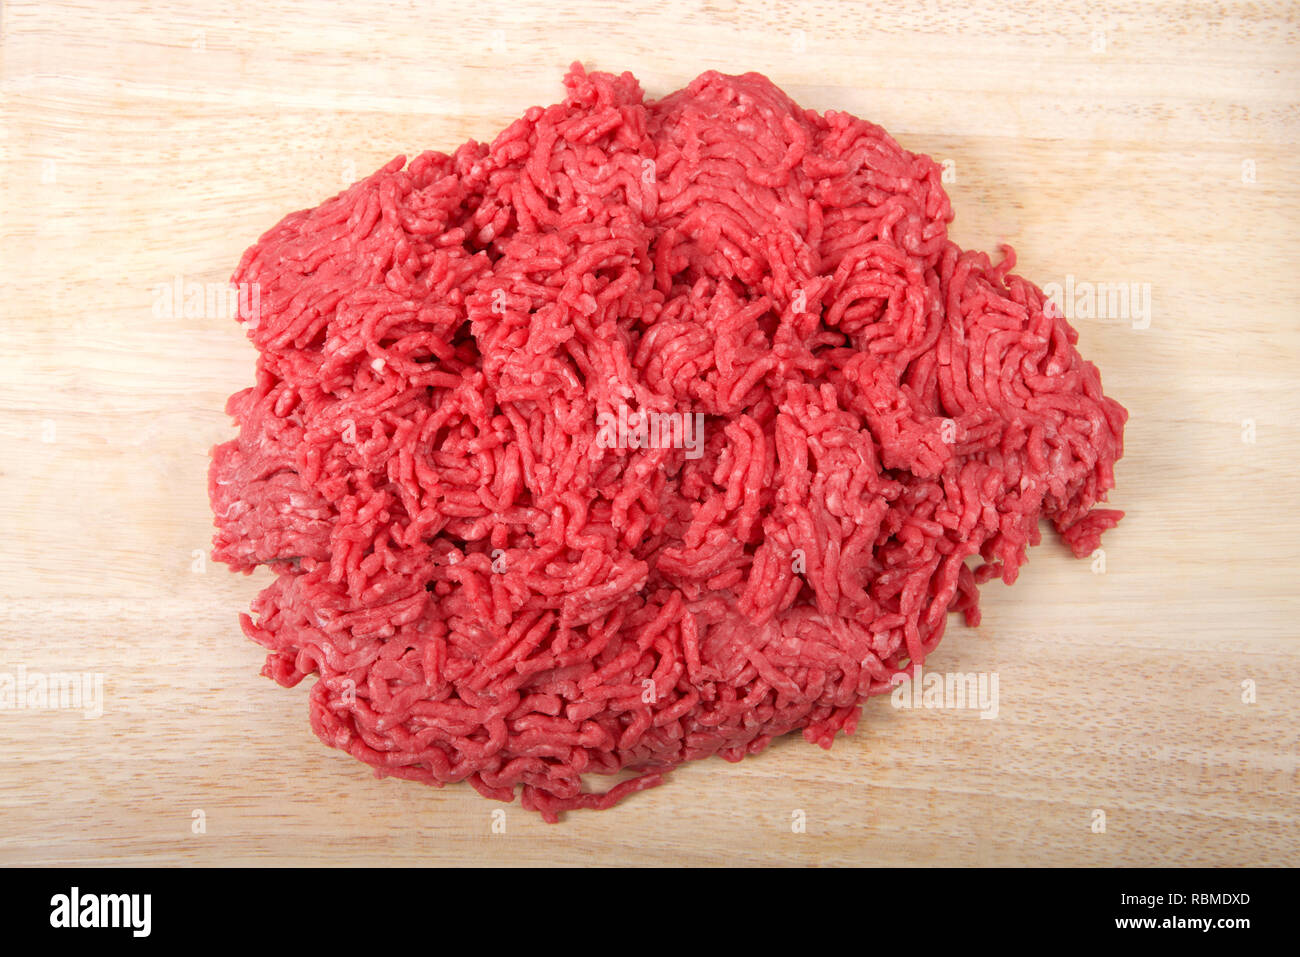 Close Up Of Raw Ground Hamburger Meat Low Fat On A Light Wood